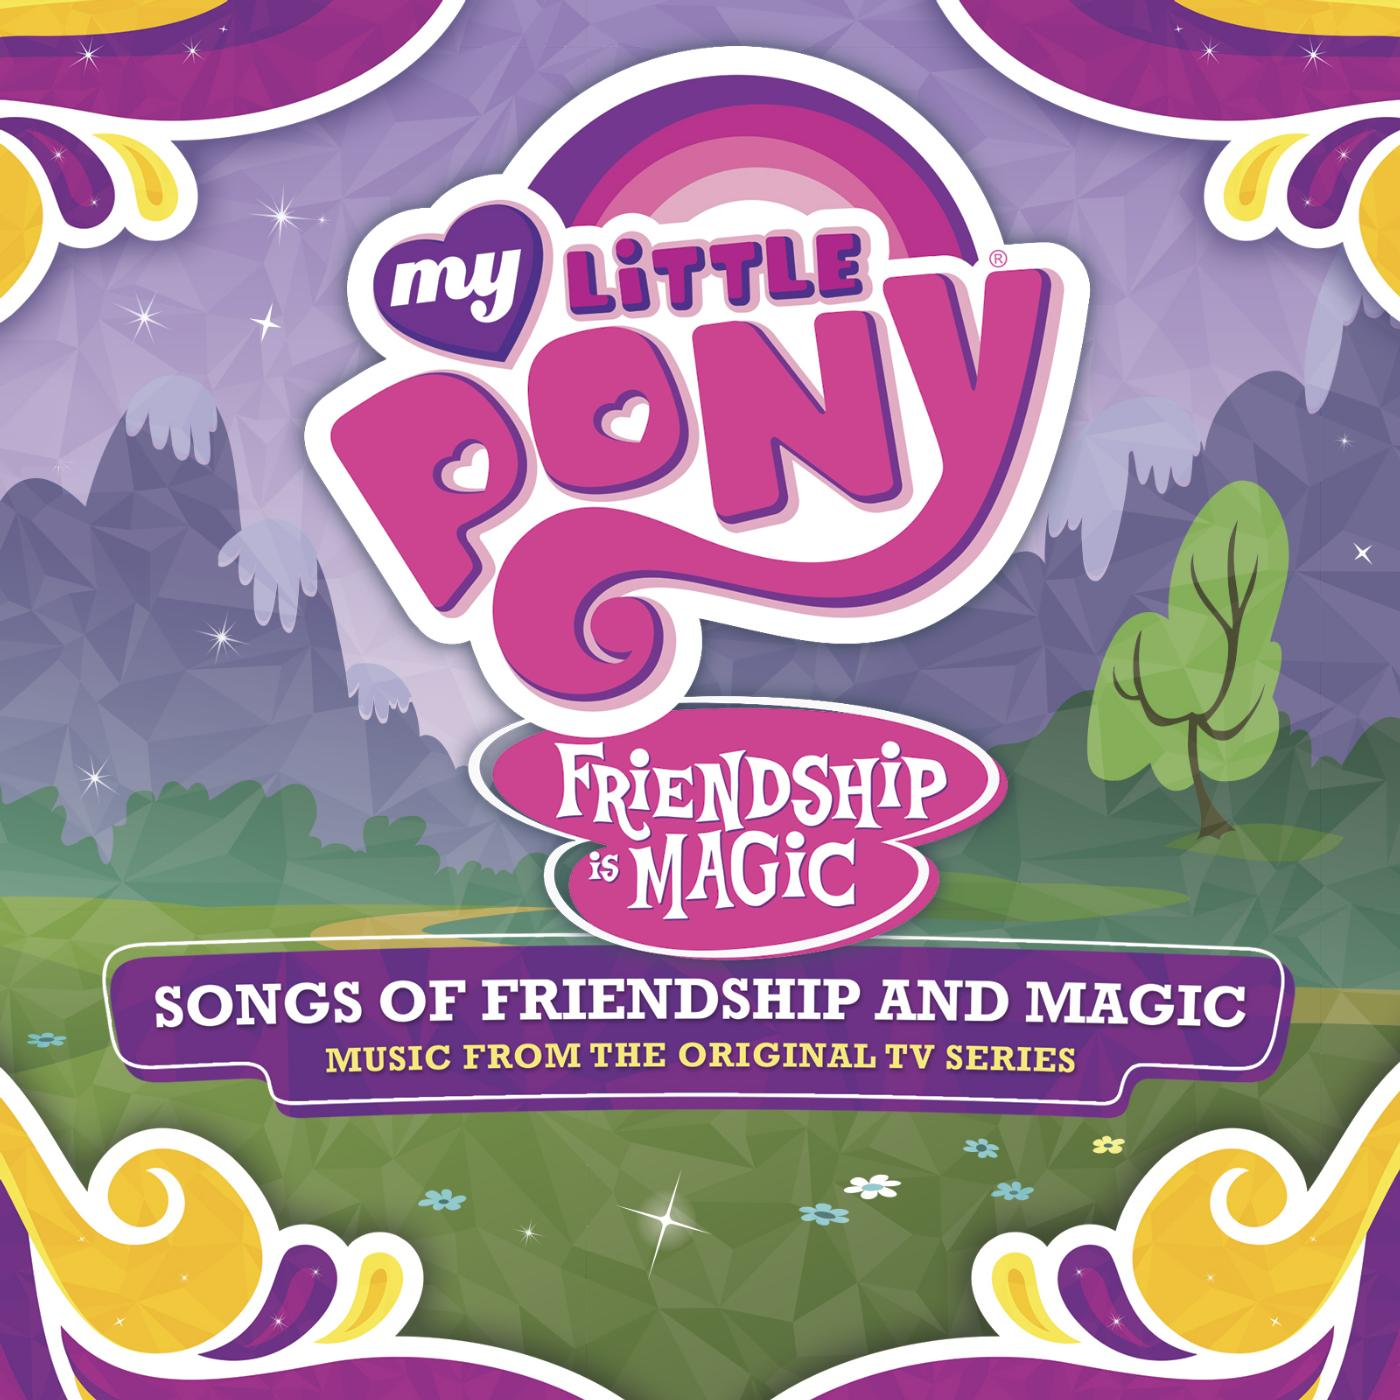 Songs of friendship and magic CD cover